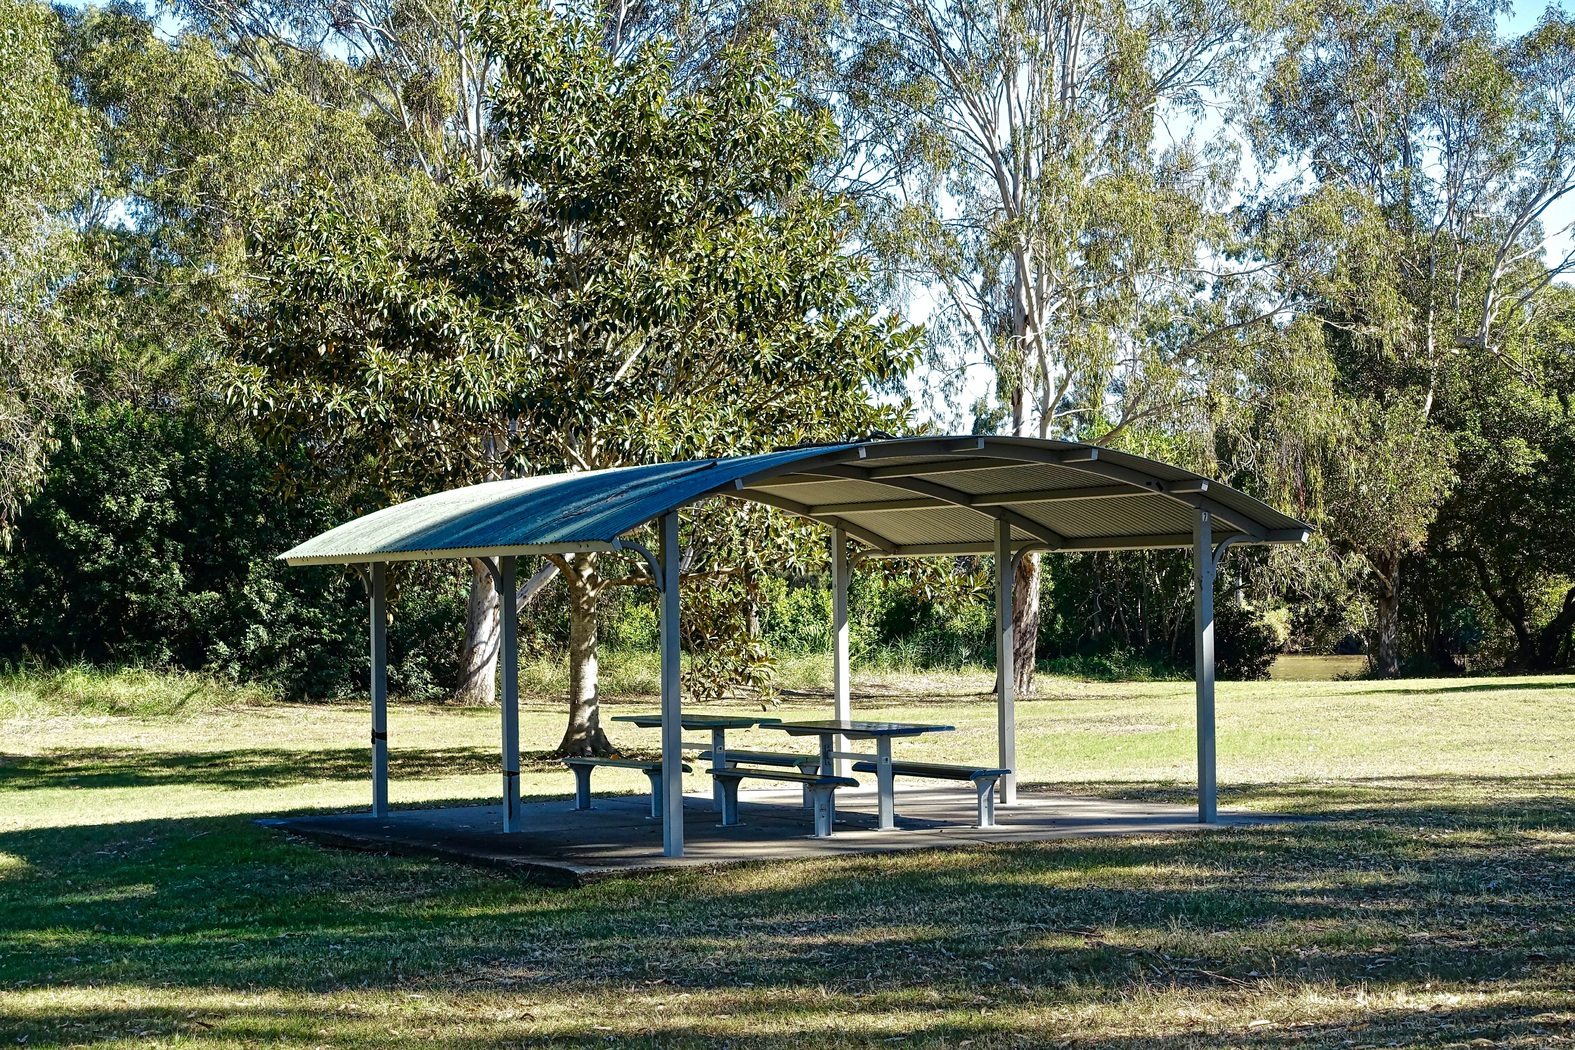 Crazy for Camping? Camping With A Screened Gazebo